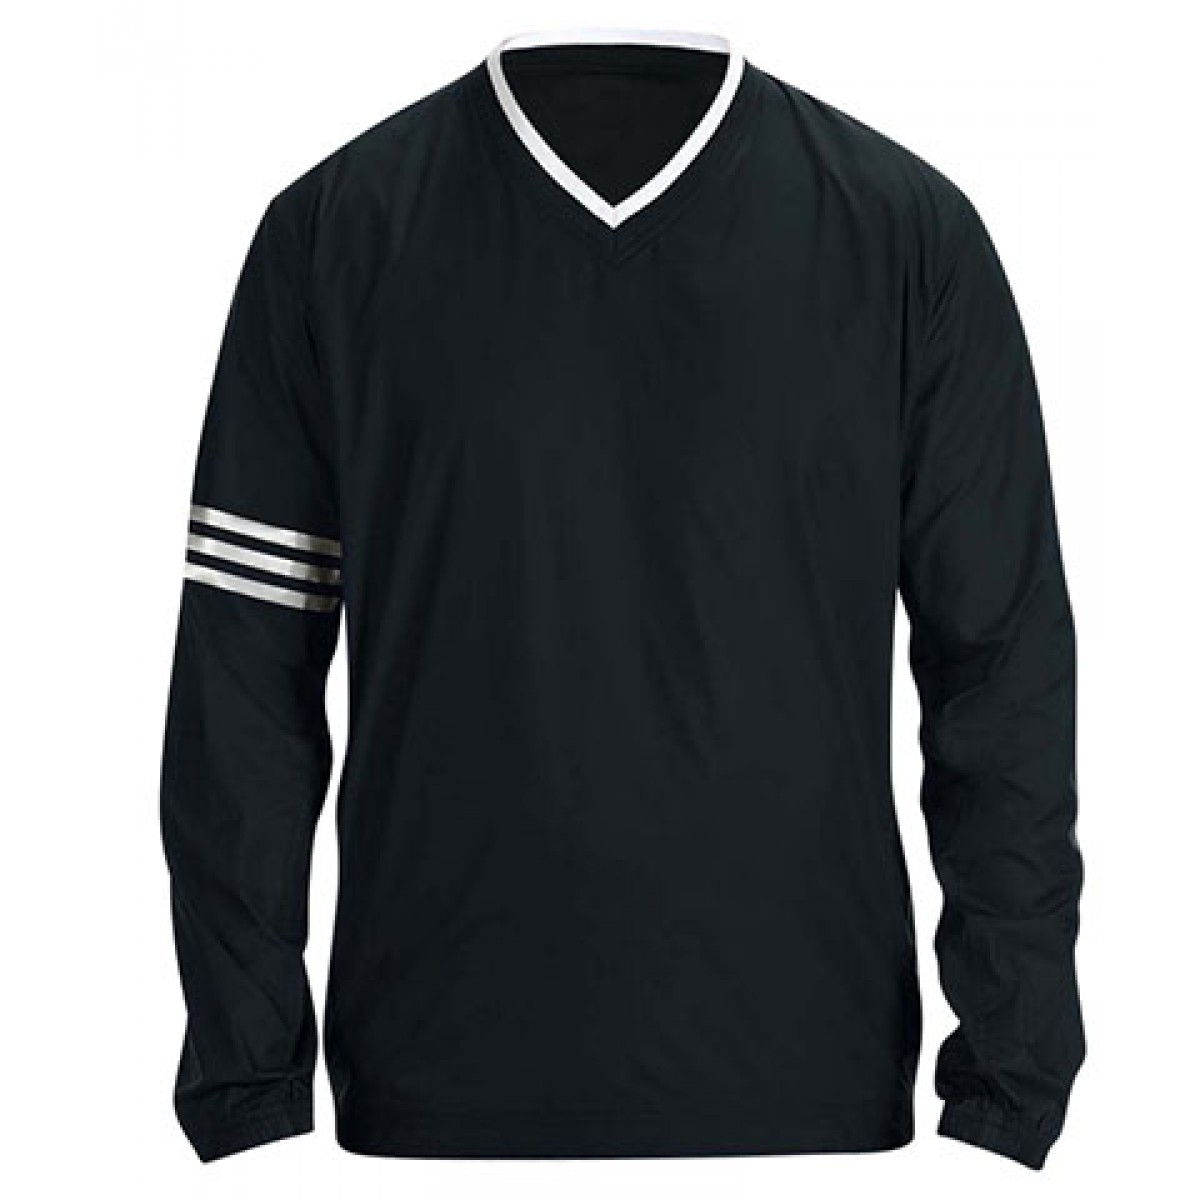 Adidas ClimaLite V-Neck Long Sleeve Wind Shirt-Black-3XL